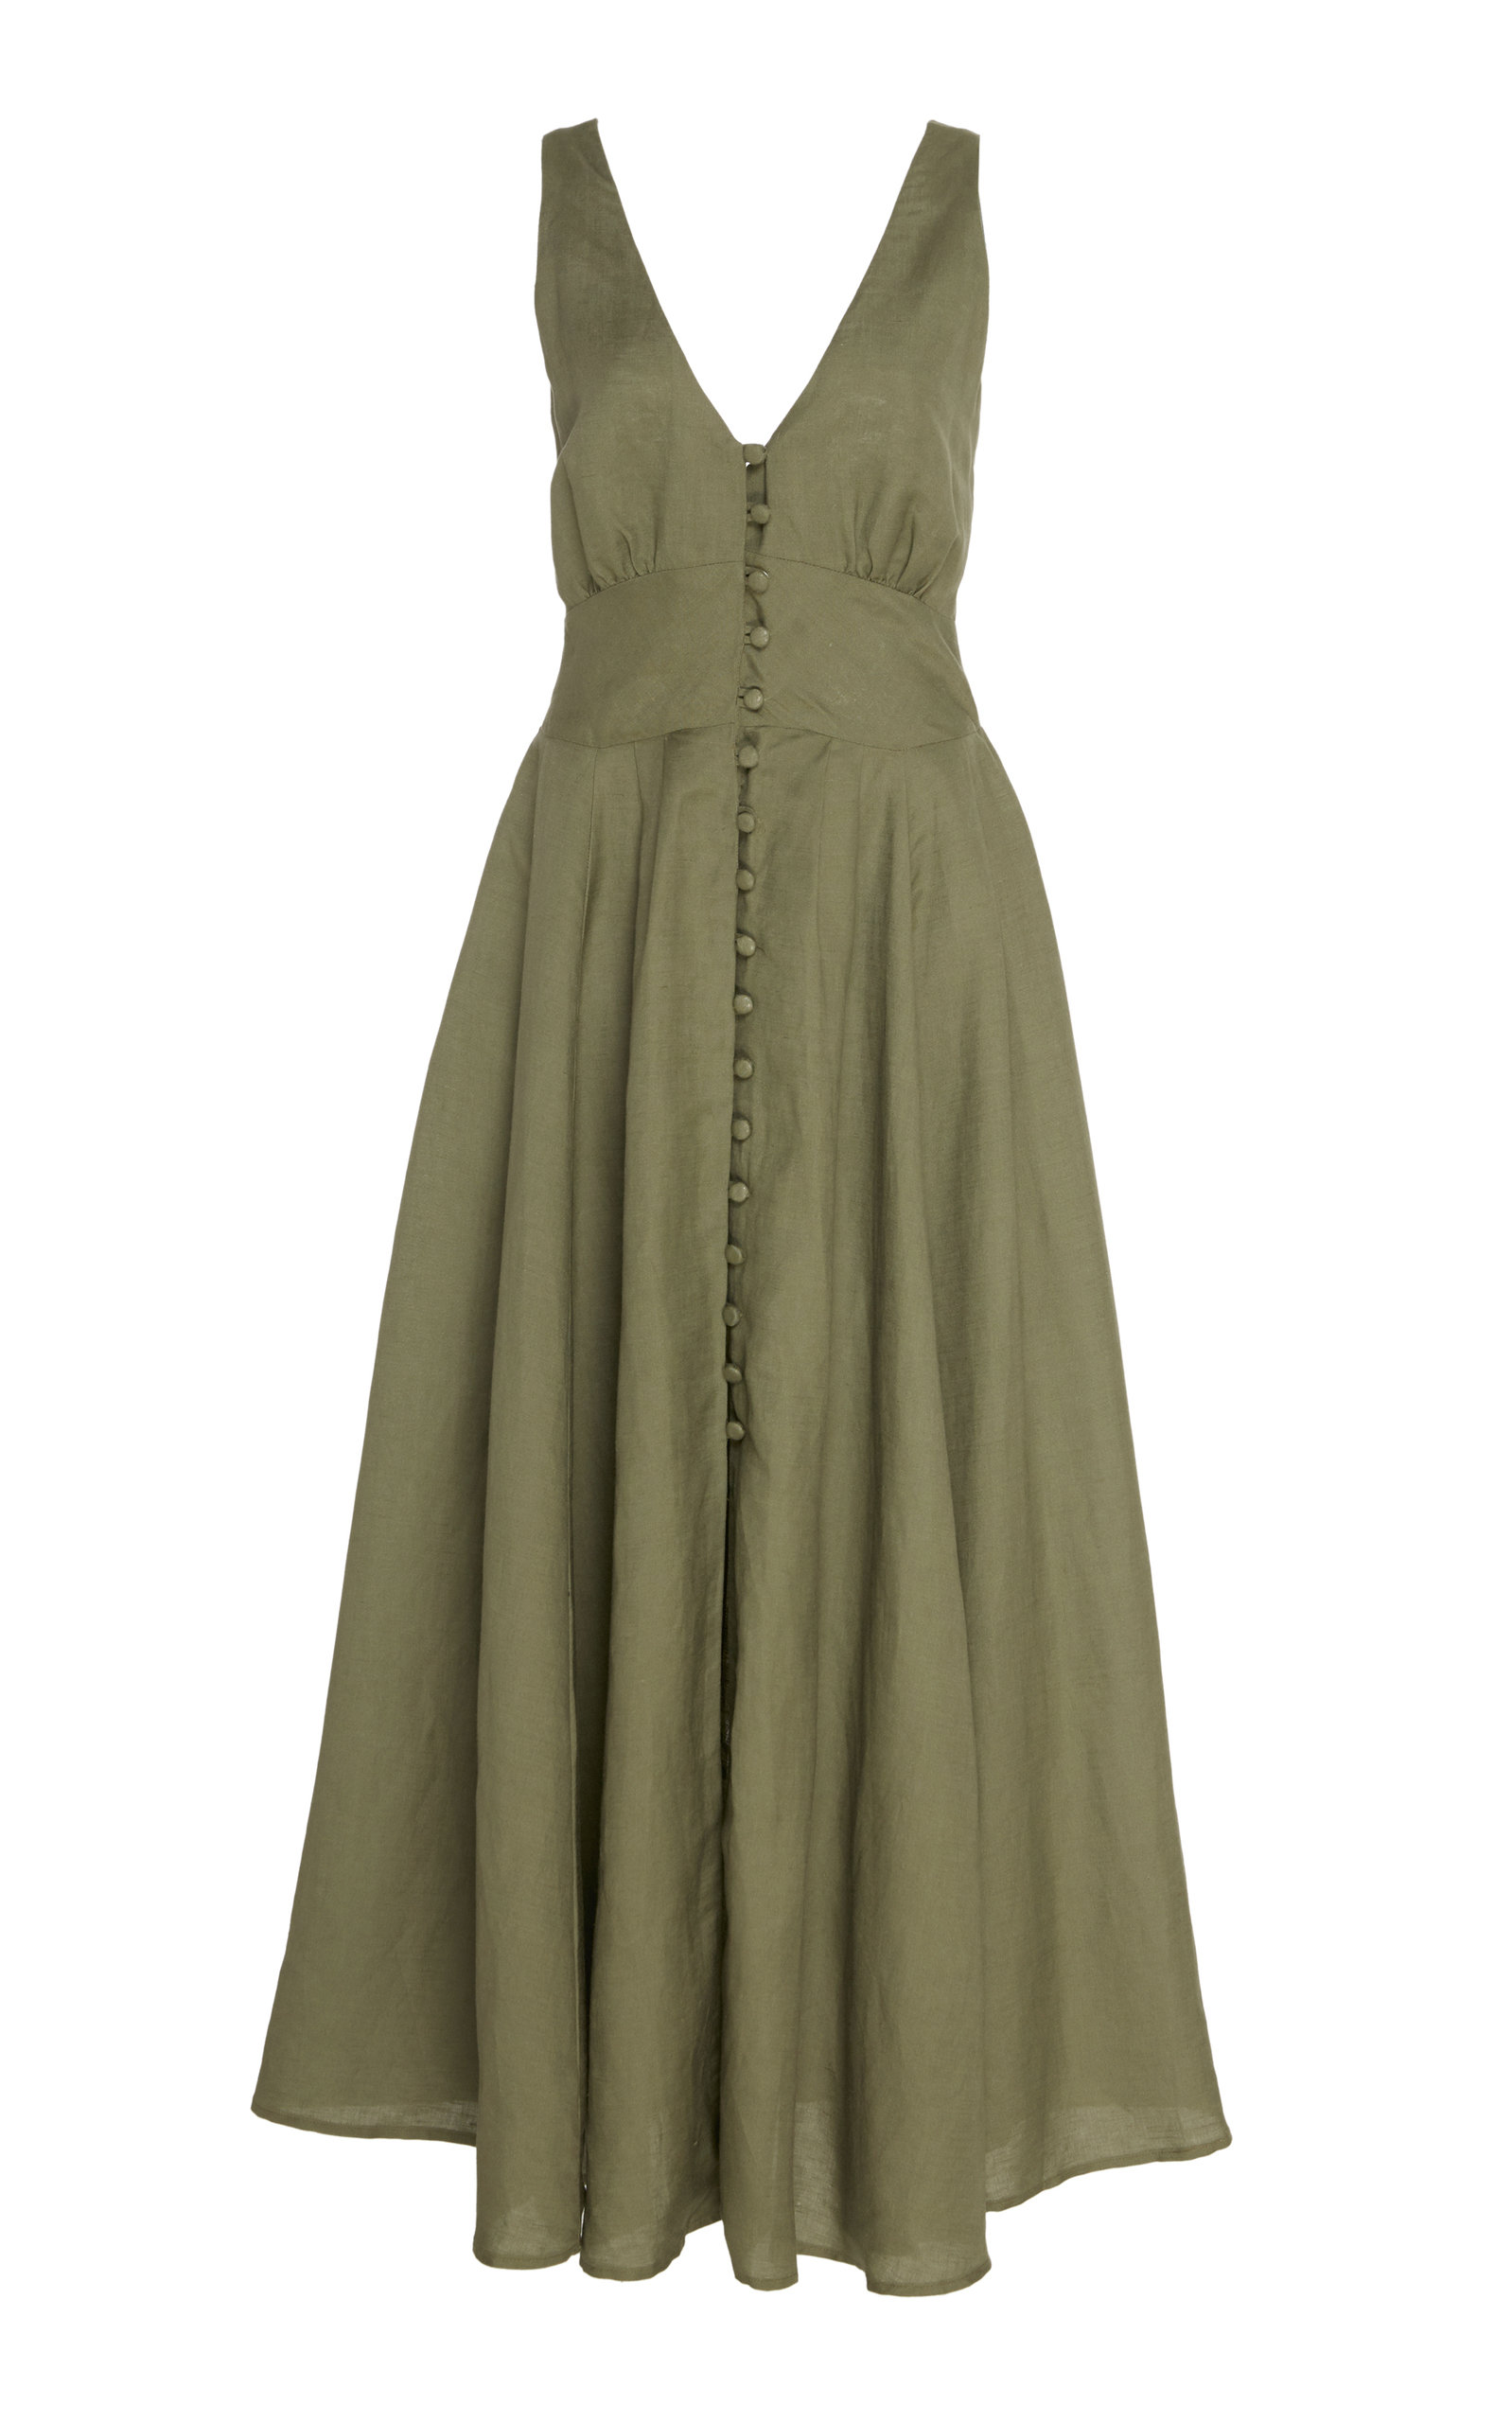 Buy Cult Gaia Angela Buckle-Detailed Linen Midi Dress online, shop Cult Gaia at the best price